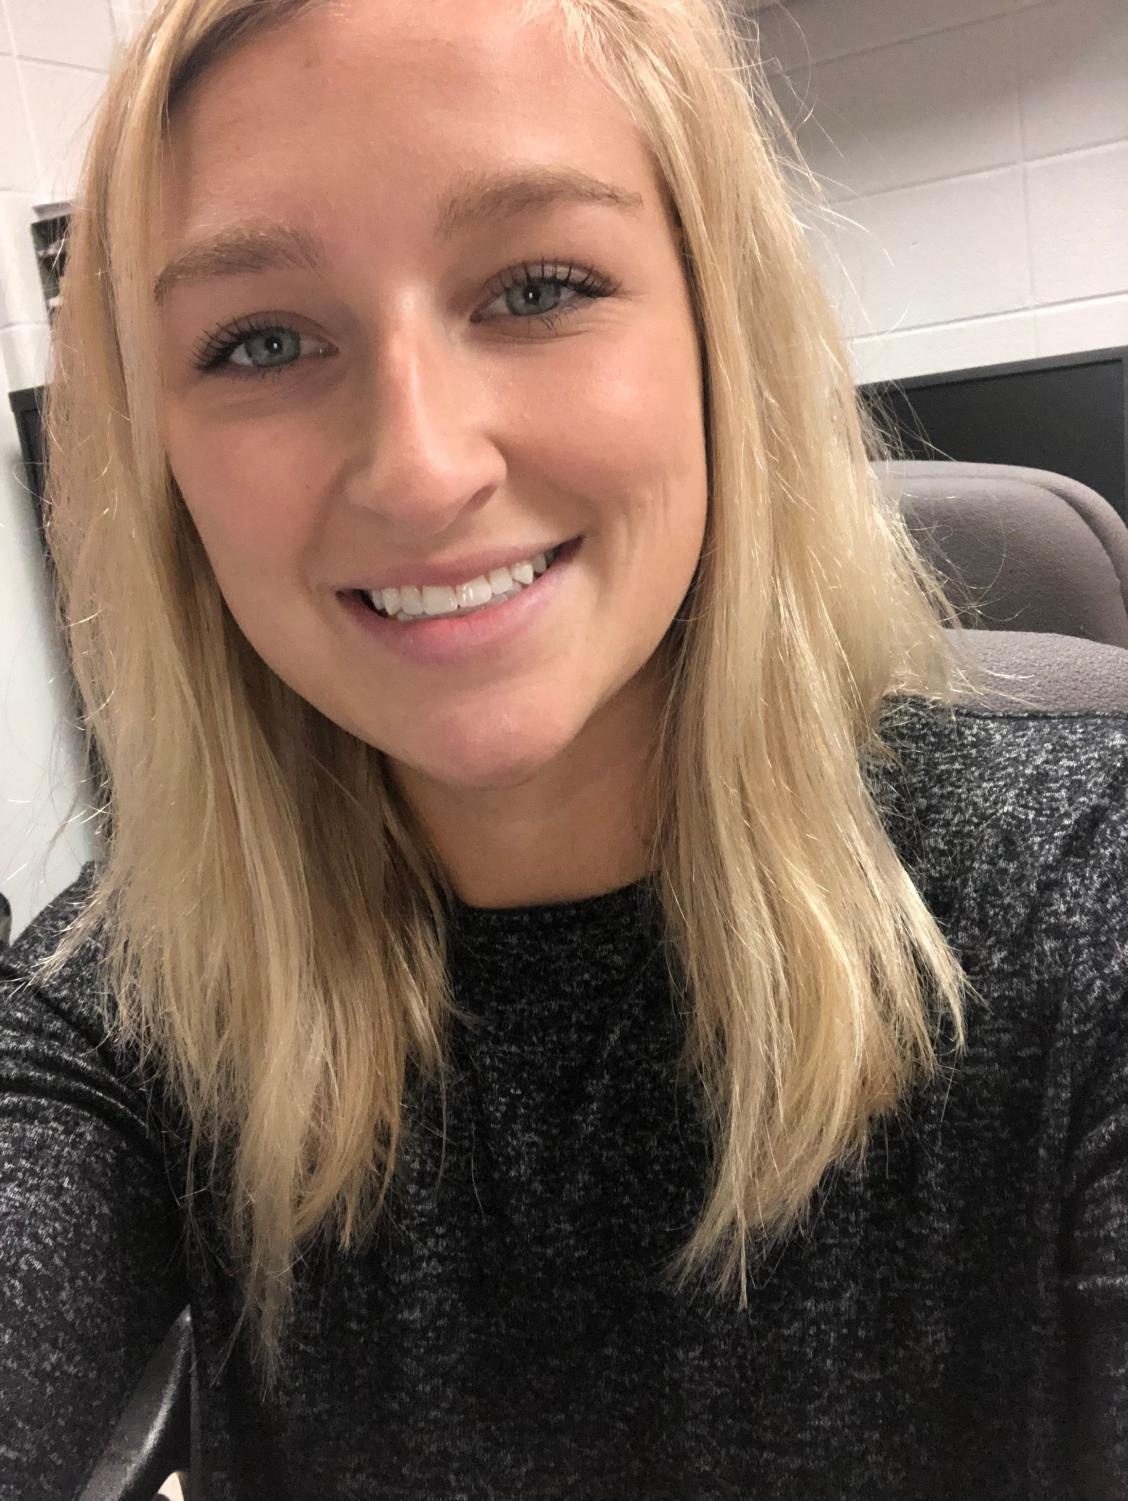 Megan Taugner is a life resource management teacher and a foods teacher. Taugner is hoping to have a good connection with her stundets and is excited for what this year brings.